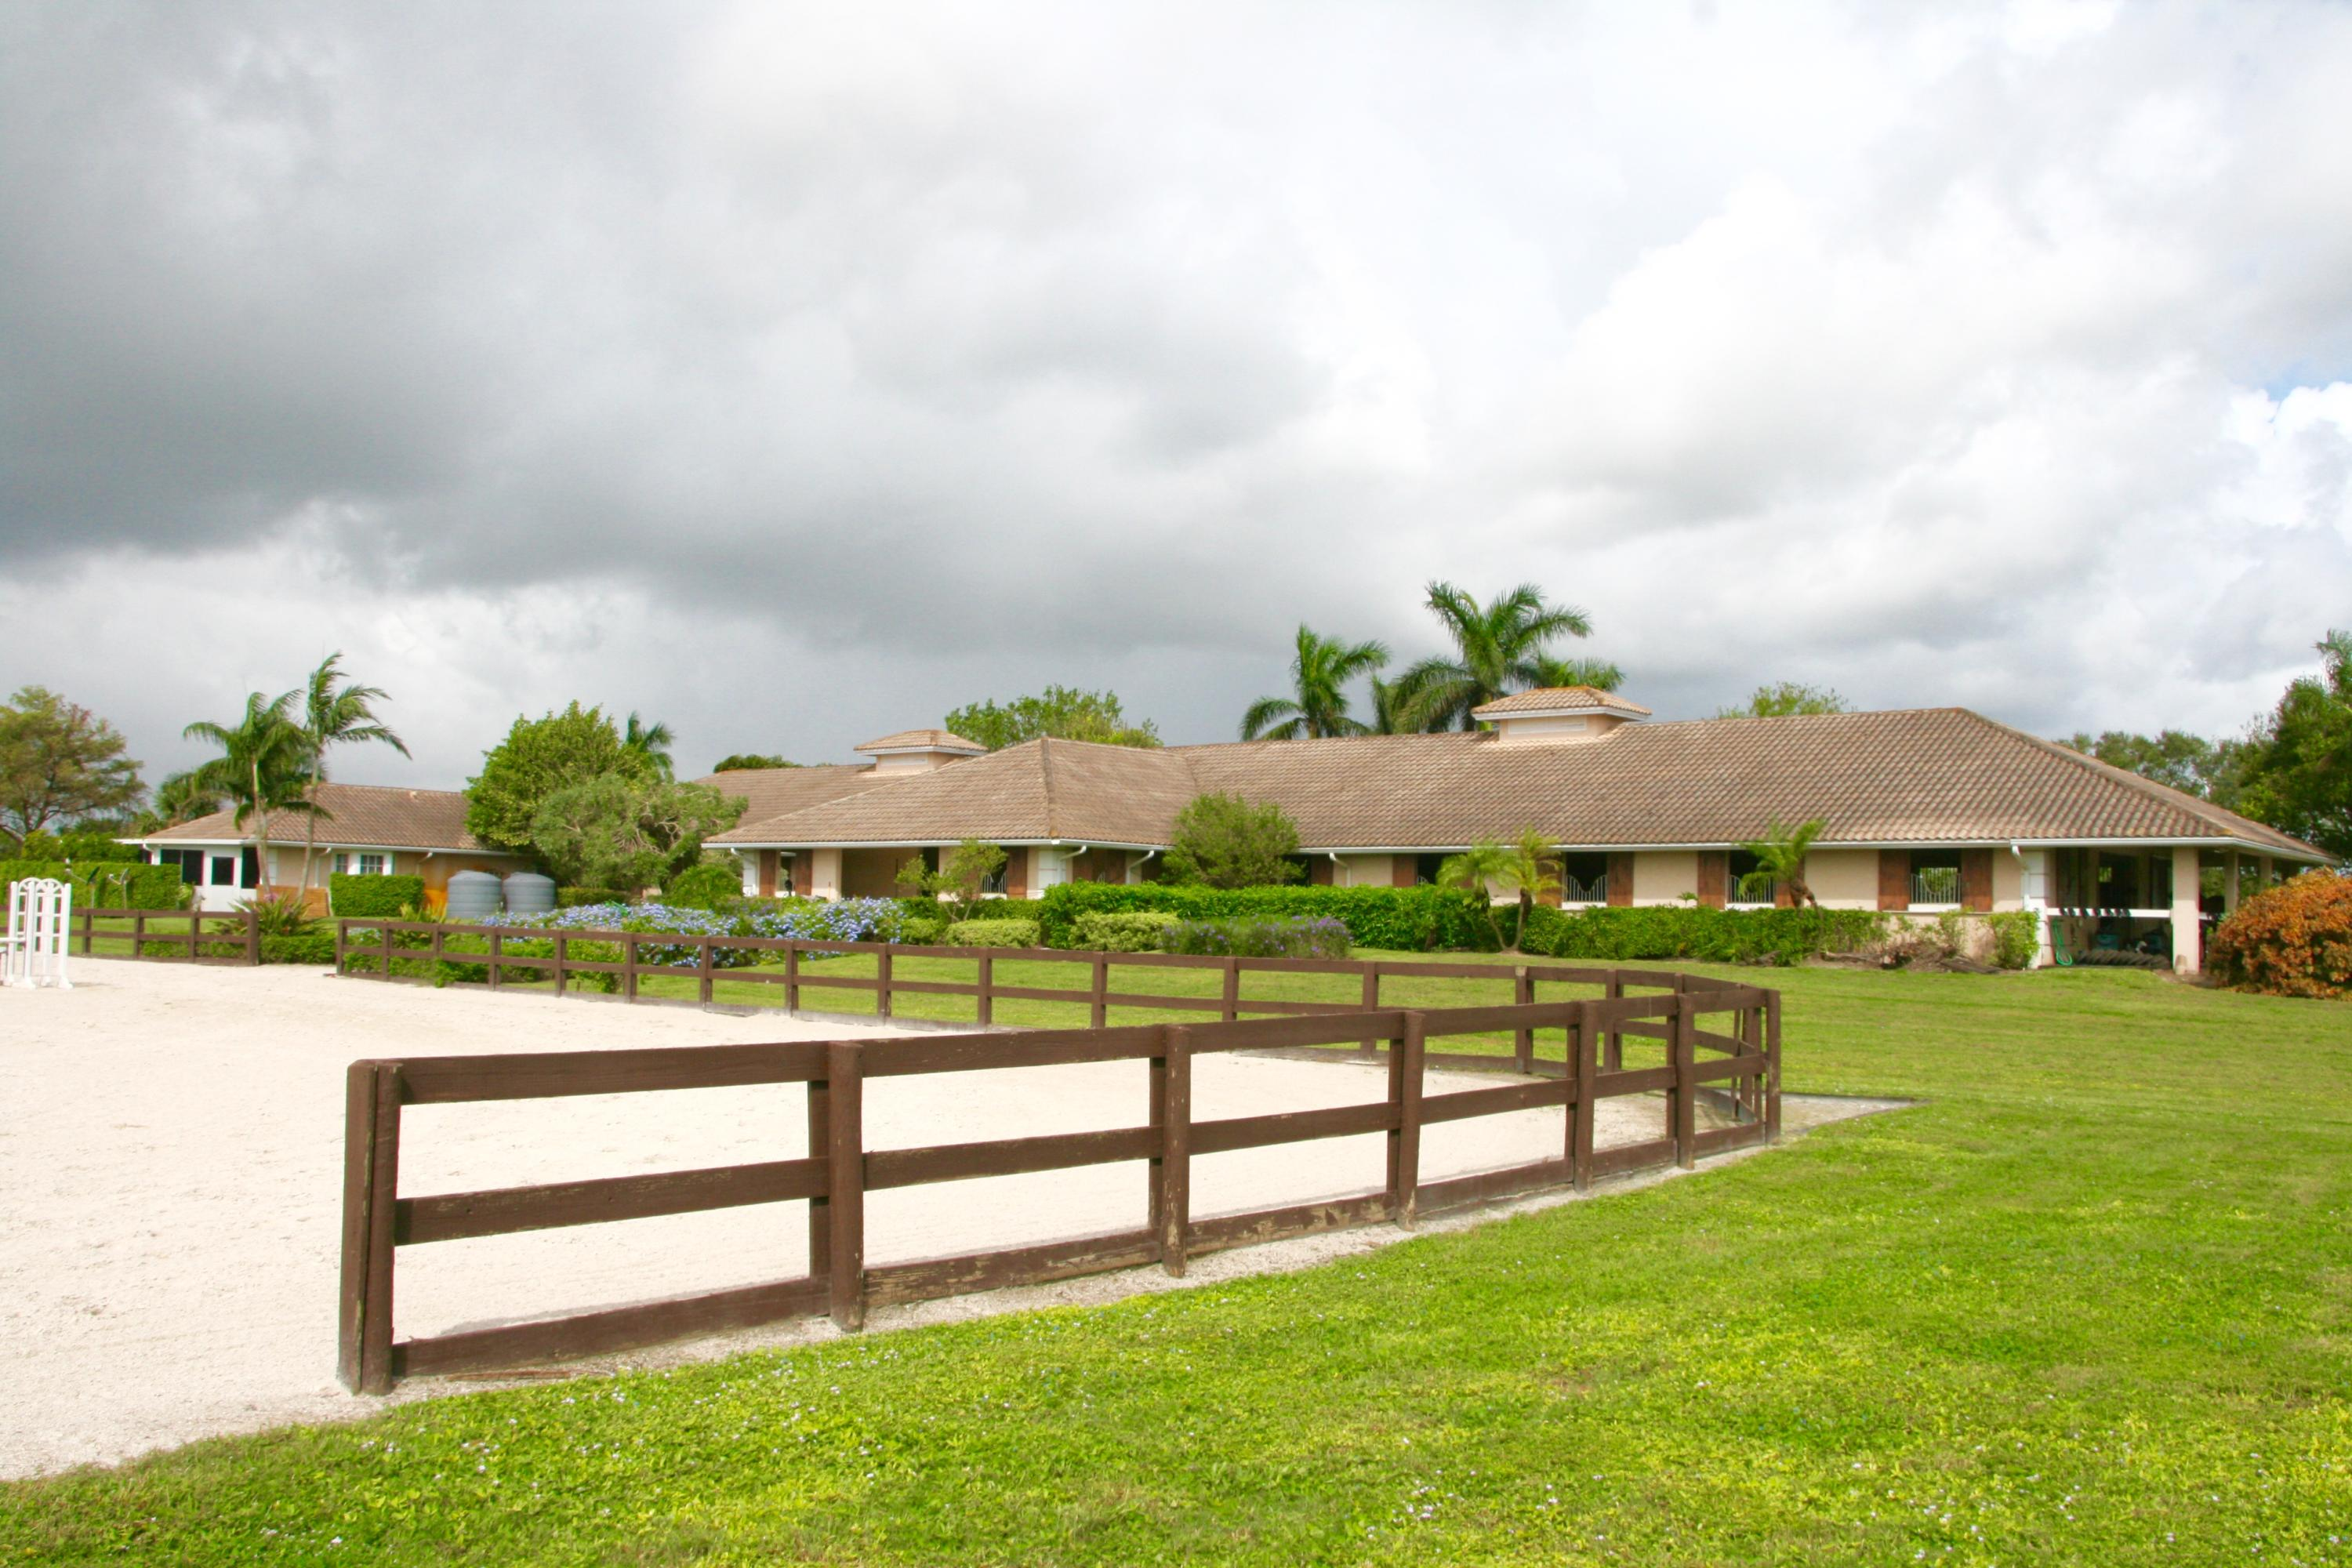 13060 52nd Place, Wellington, Florida 33449, ,0.1 BathroomBathrooms,Barn,For Rent,52nd,1,RX-10491273